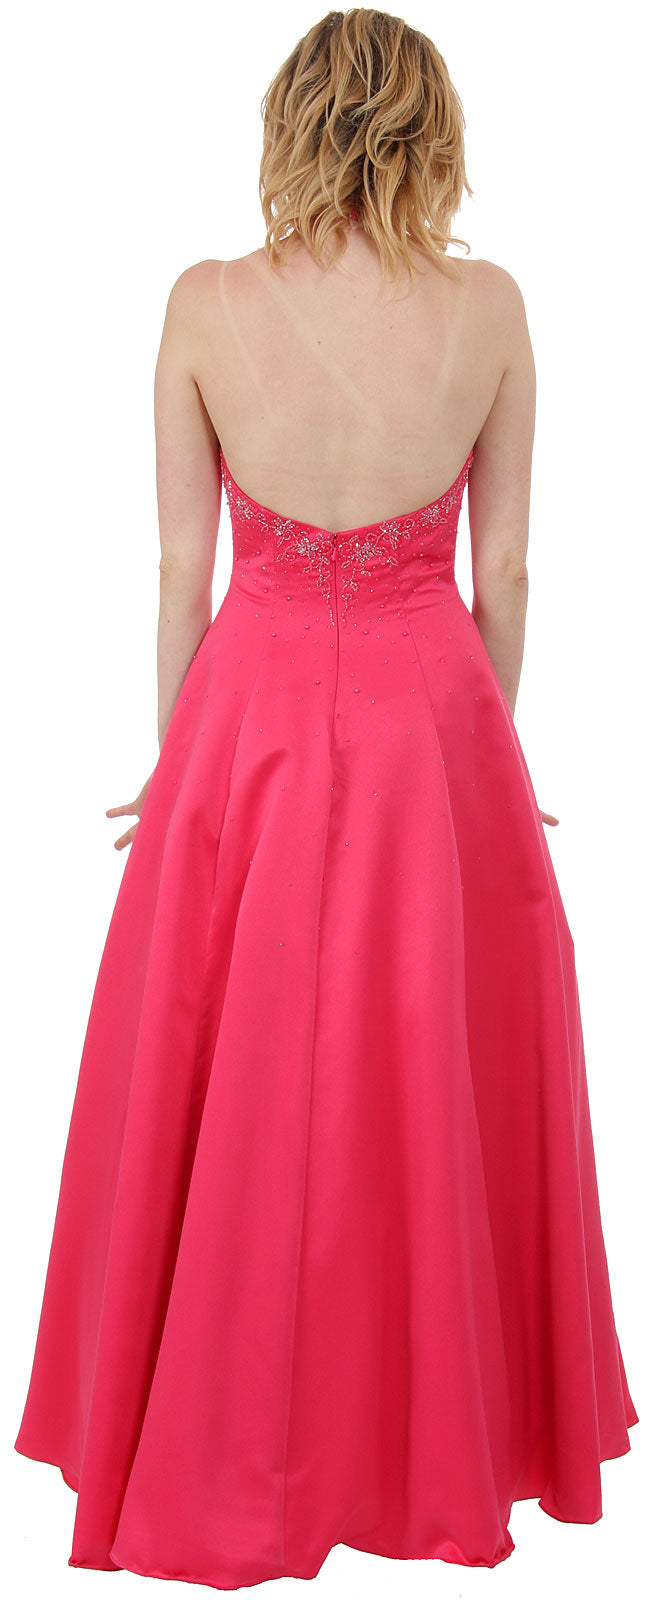 Back image of Beaded Halter-neck Prom Dress